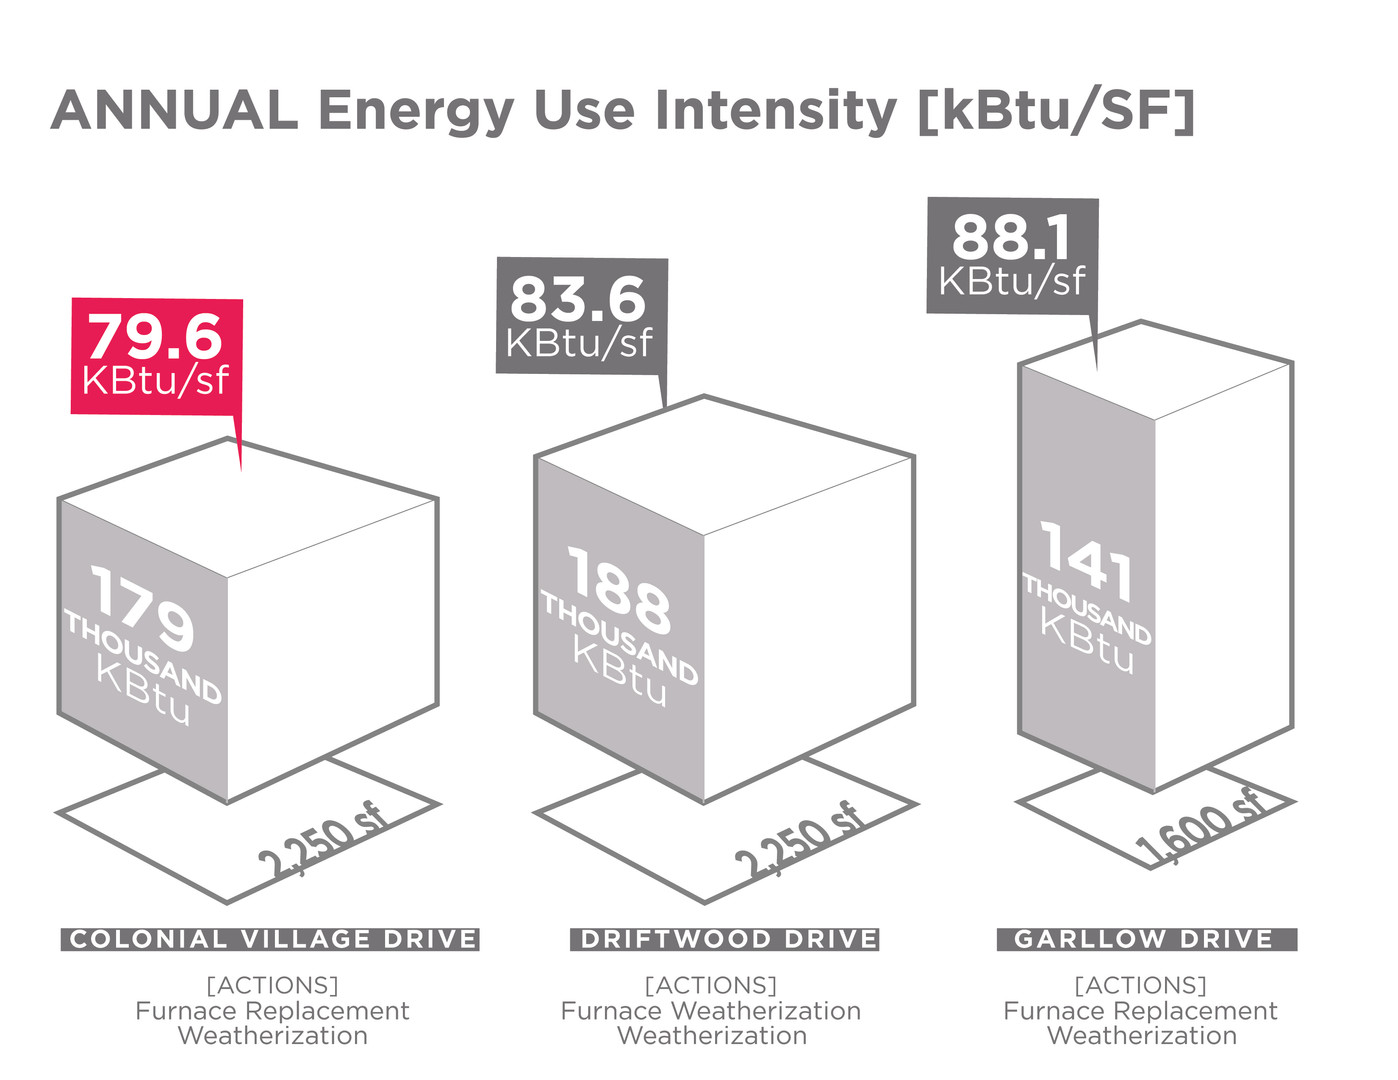 Energy use intensity